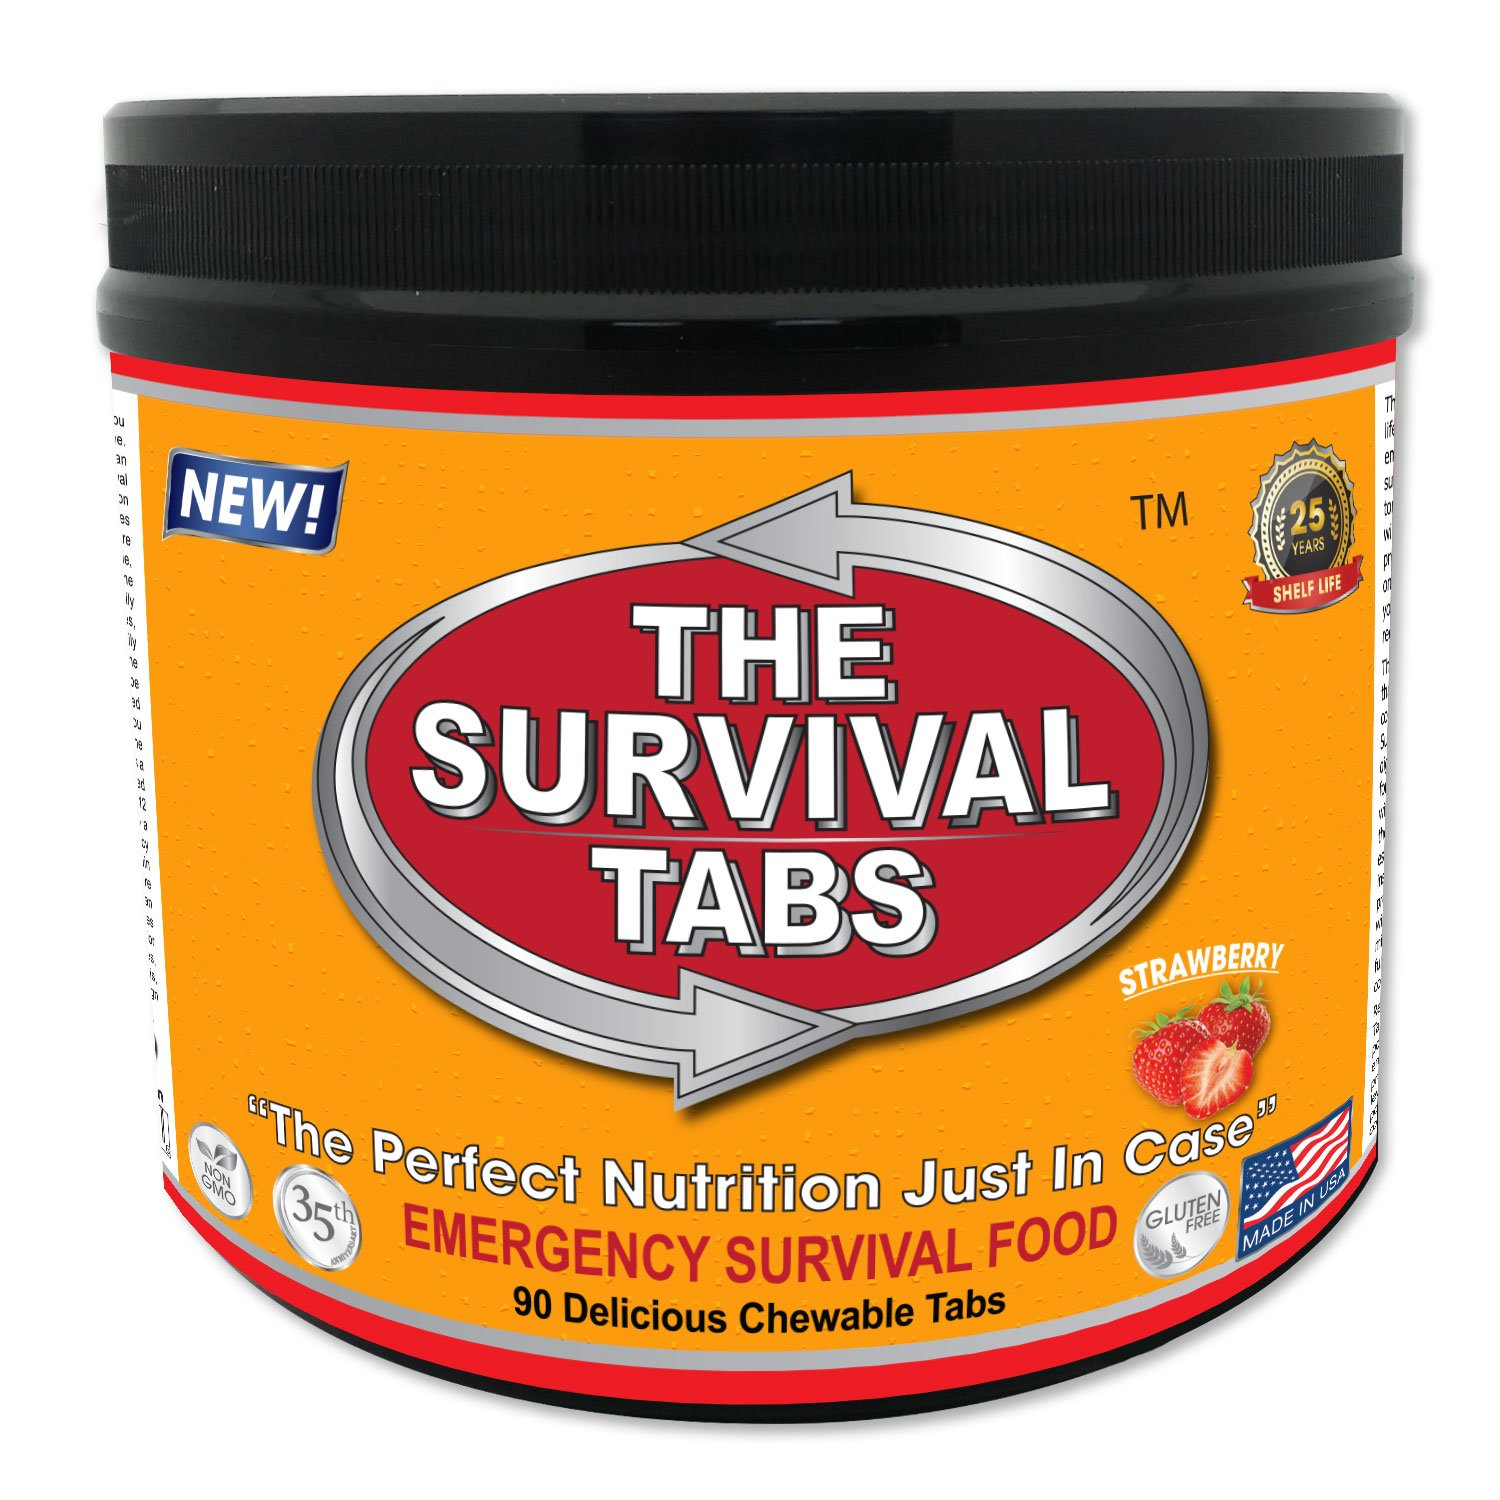 Survival Tabs 7-day Food Supply Emergency Food Ration 90 tabs Survival MREs for Disaster Preparedness for Earthquake Flood Tsunami Gluten Free and Non-GMO 25 Years Shelf Life - Strawberry Flavor LOHAS FARMS